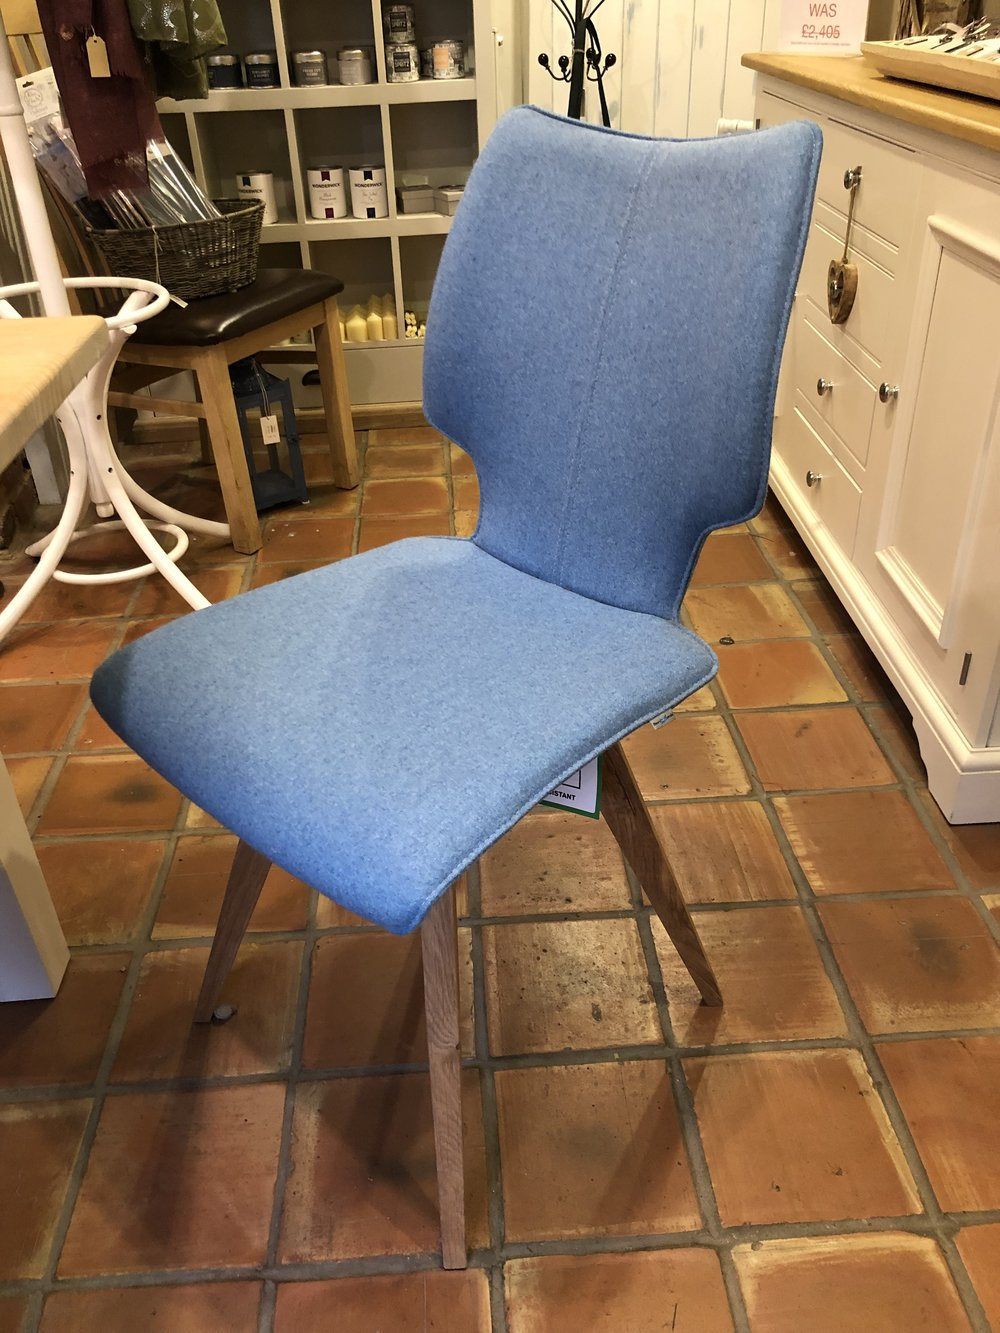 Set of SIX Blue fabric chairs with Solid Oak splayed legs NOW £1.352, WAS £1,932